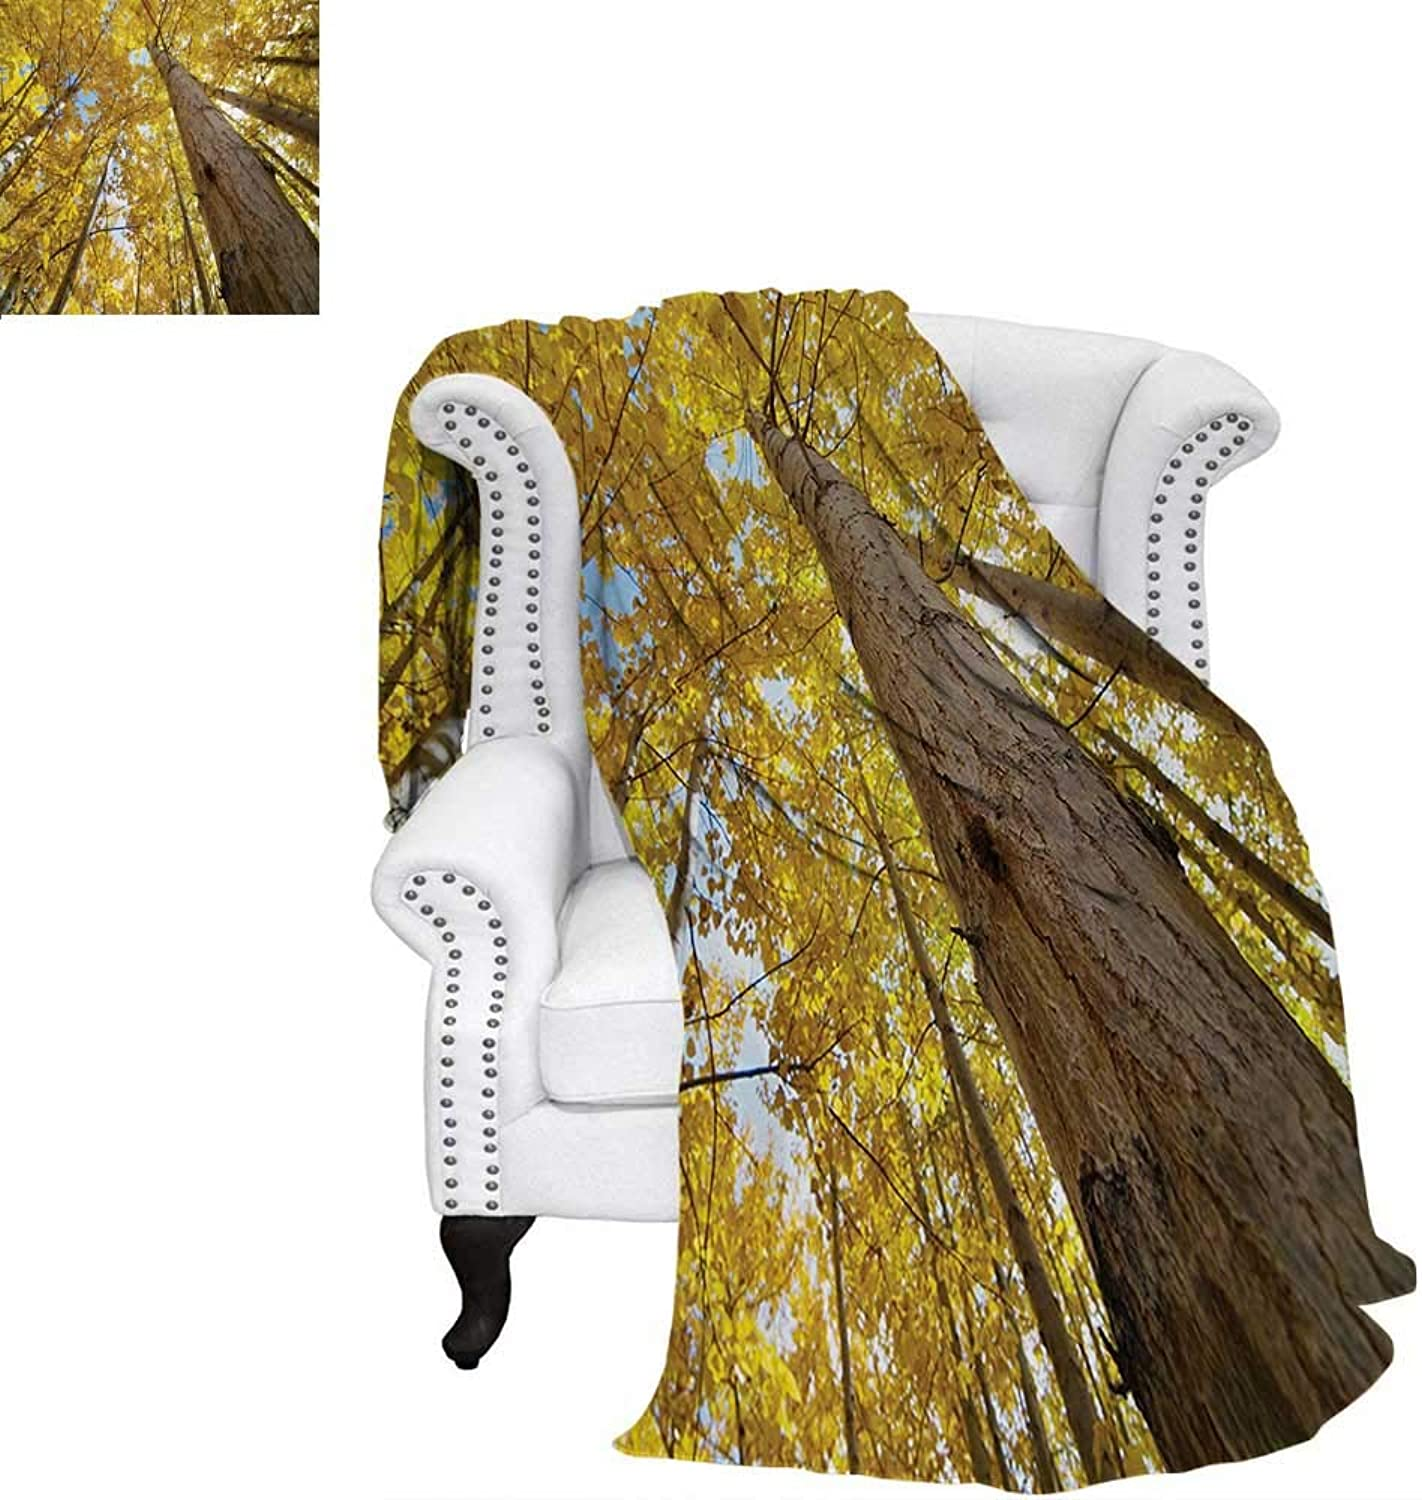 Warmfamily Nature Summer Quilt Comforter Image Up View Fall Aspen Tree Leaves in Faded Tone Autumn Season Photography Digital Printing Blanket 60 x50  Yellow